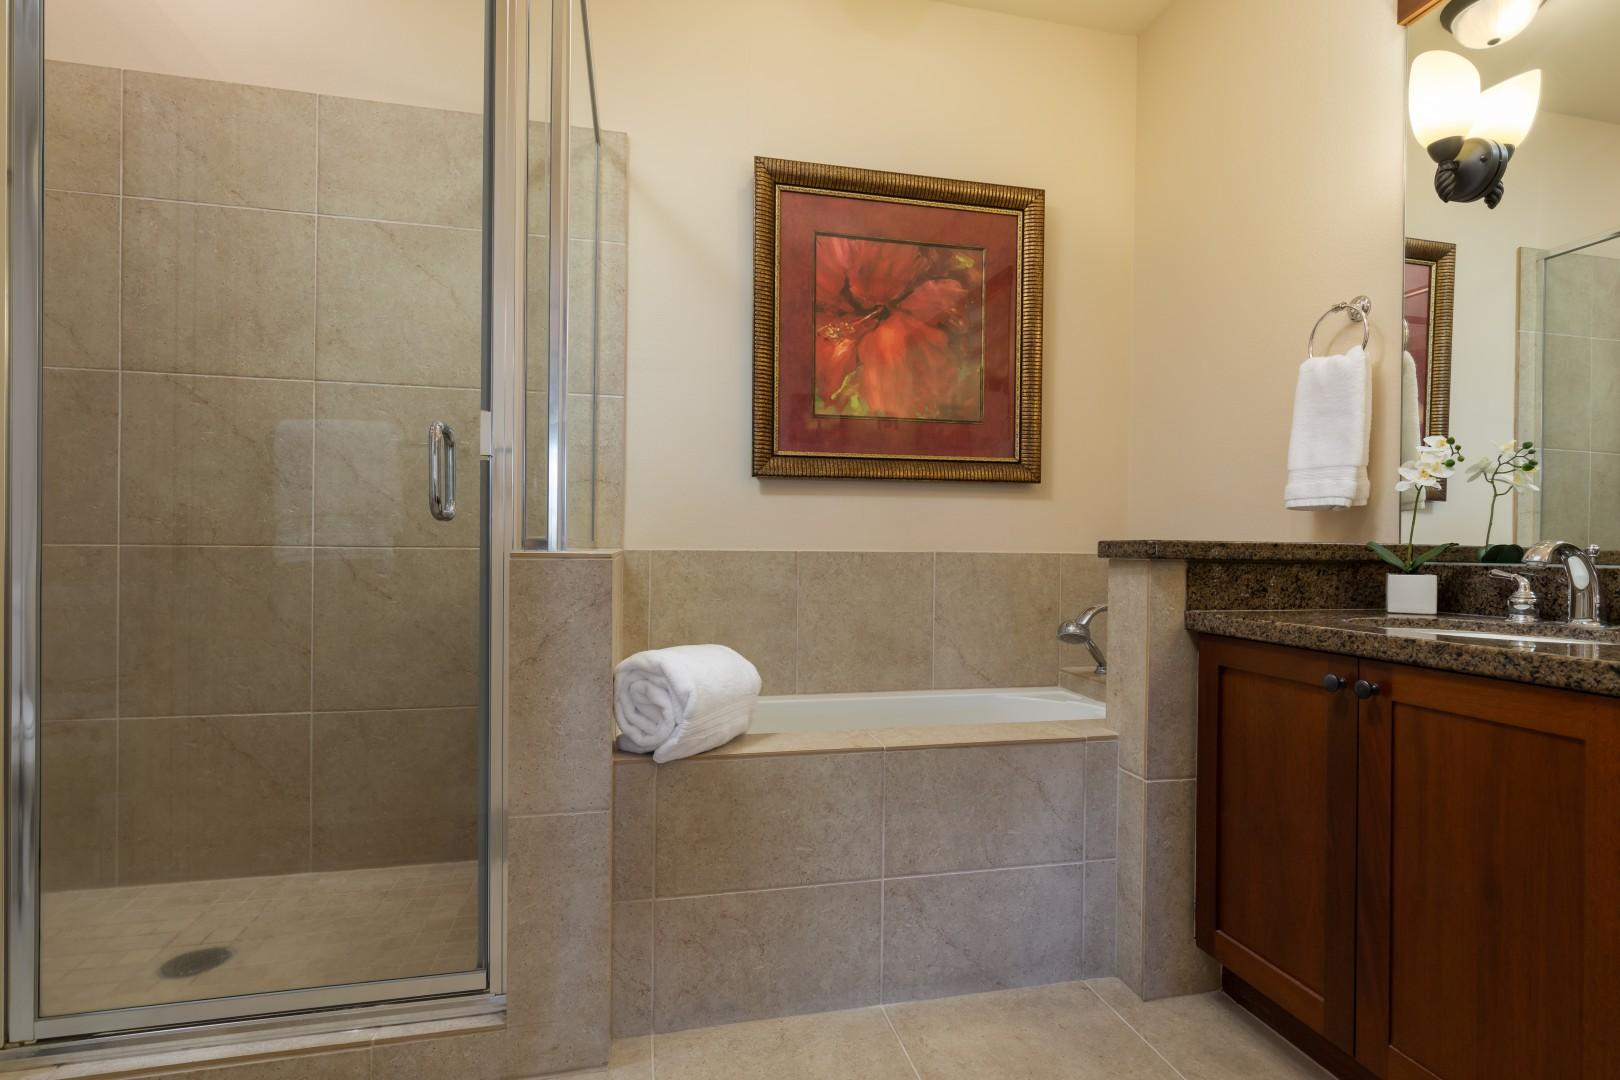 Take a bath in the soaking tub or enjoy the walk-in extra large shower.